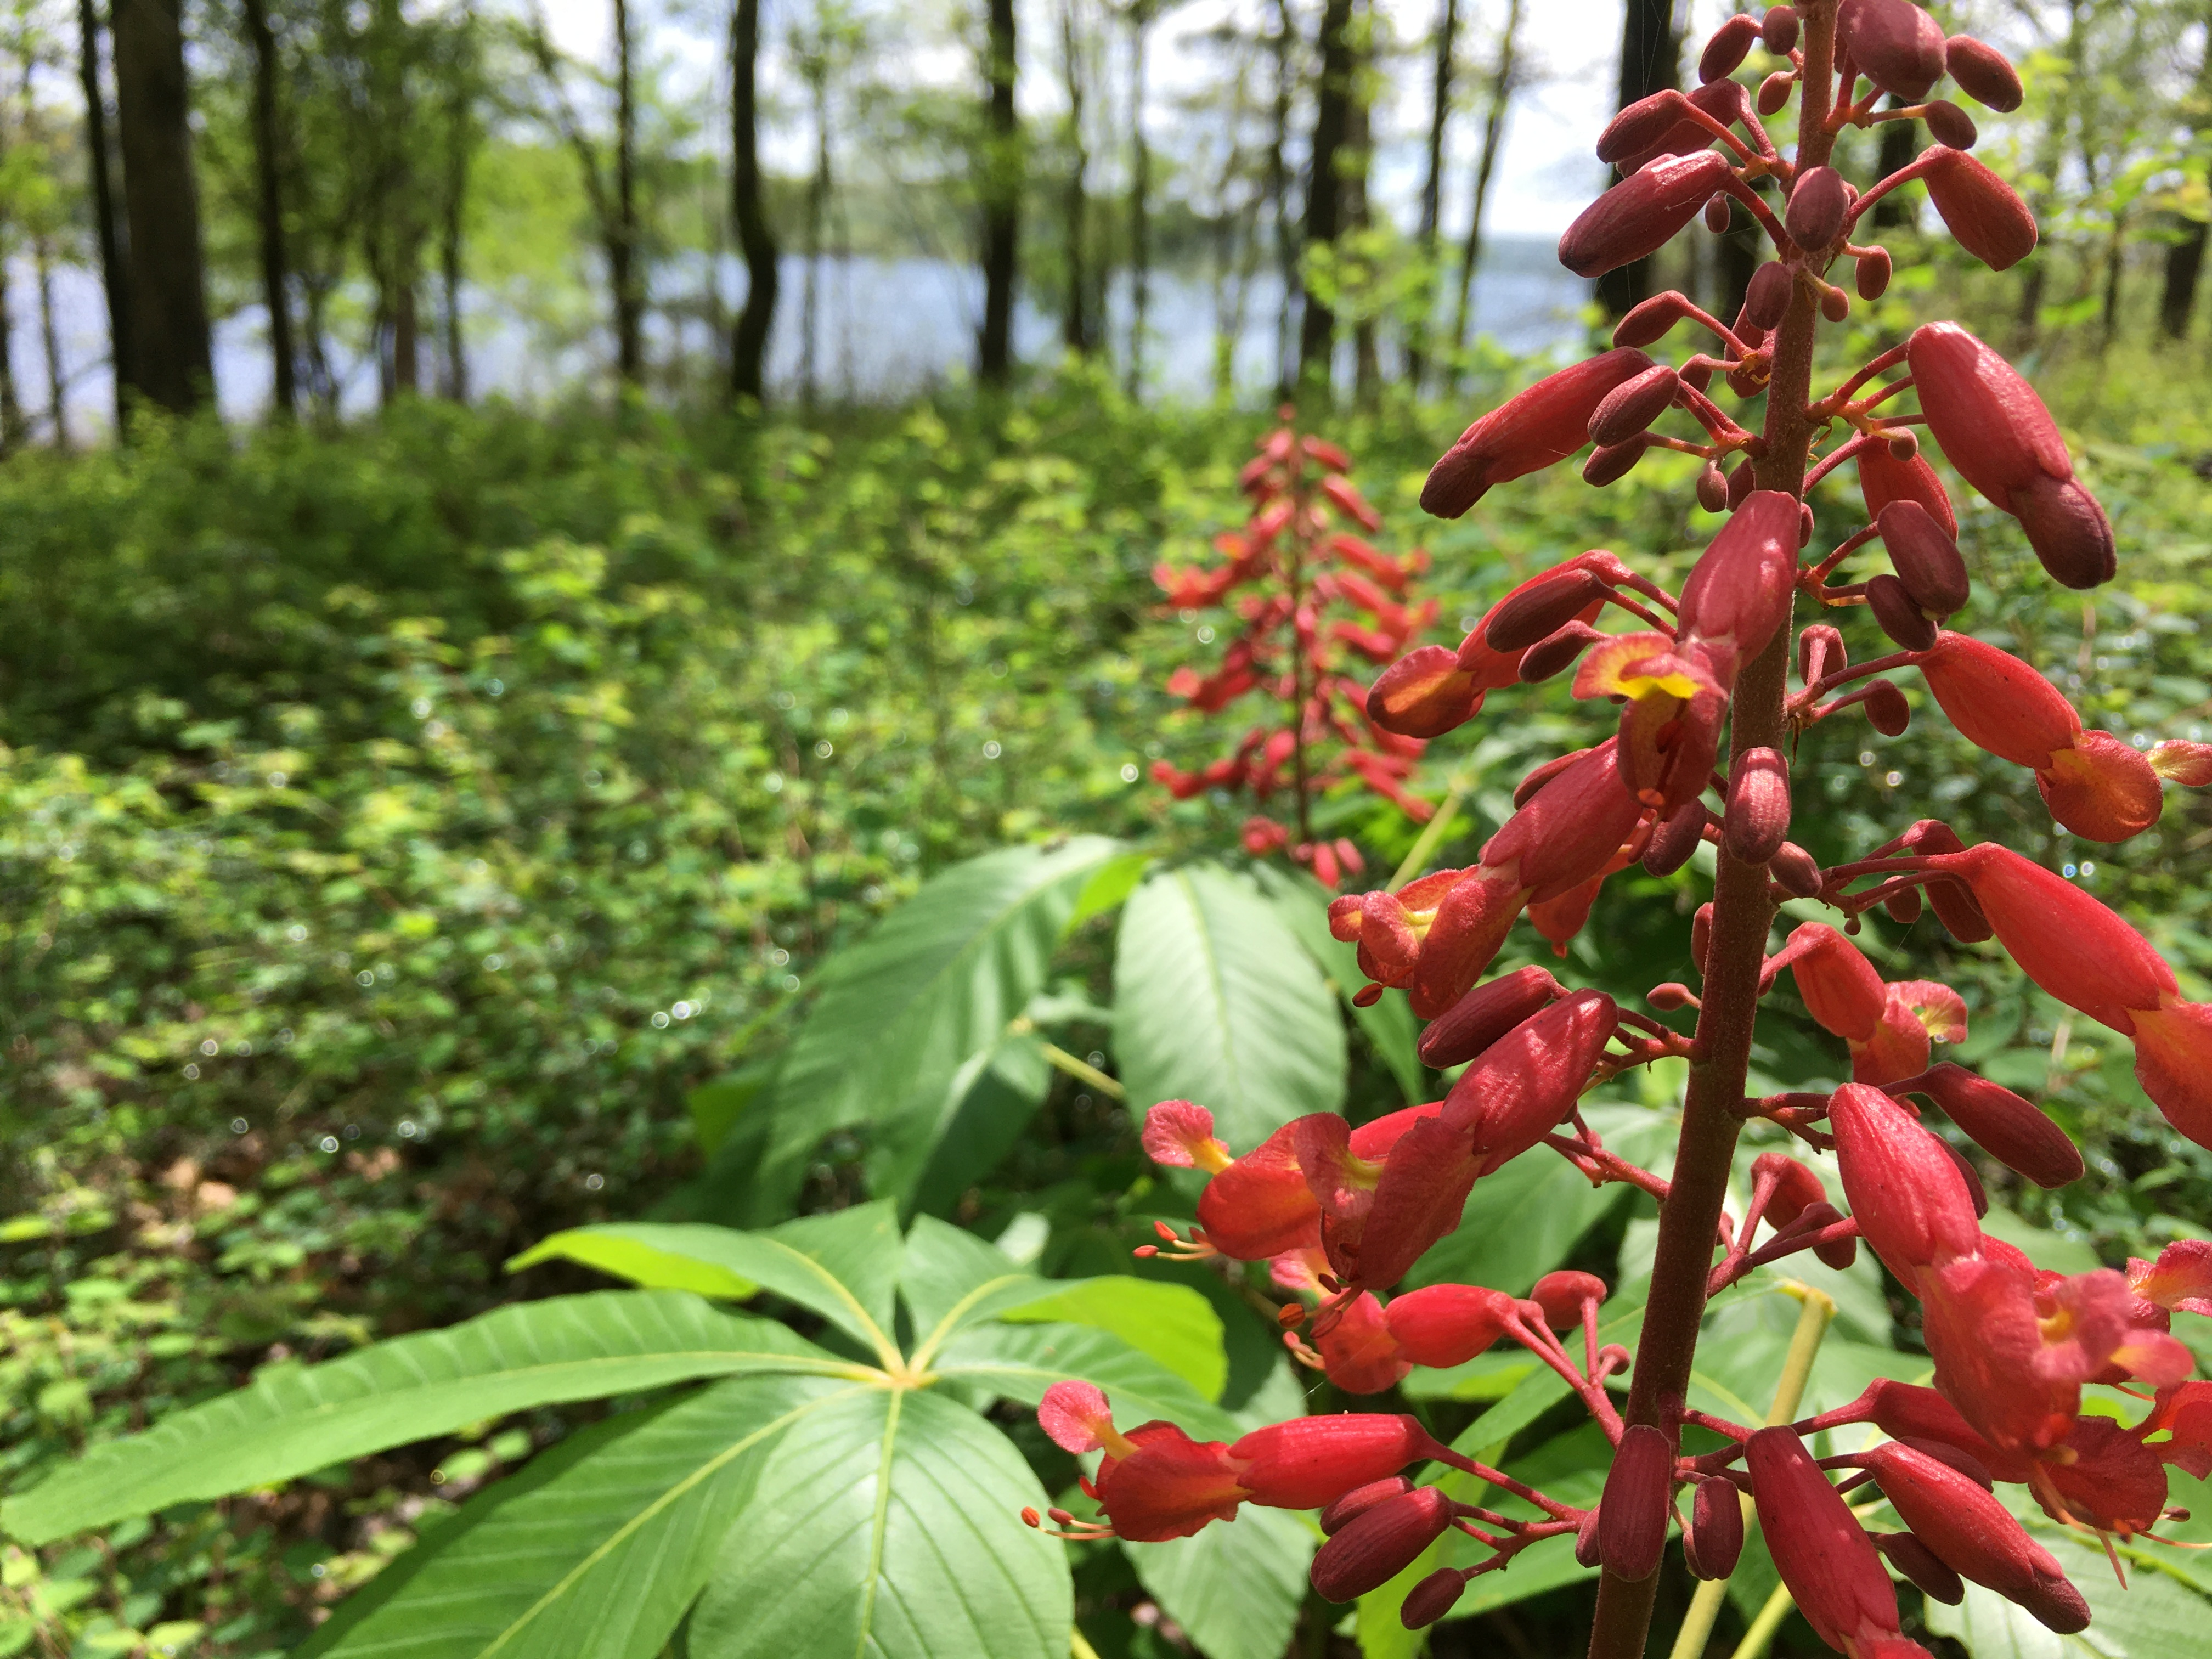 red buckeye, a vertical stalk of red blossoms above large green leaves